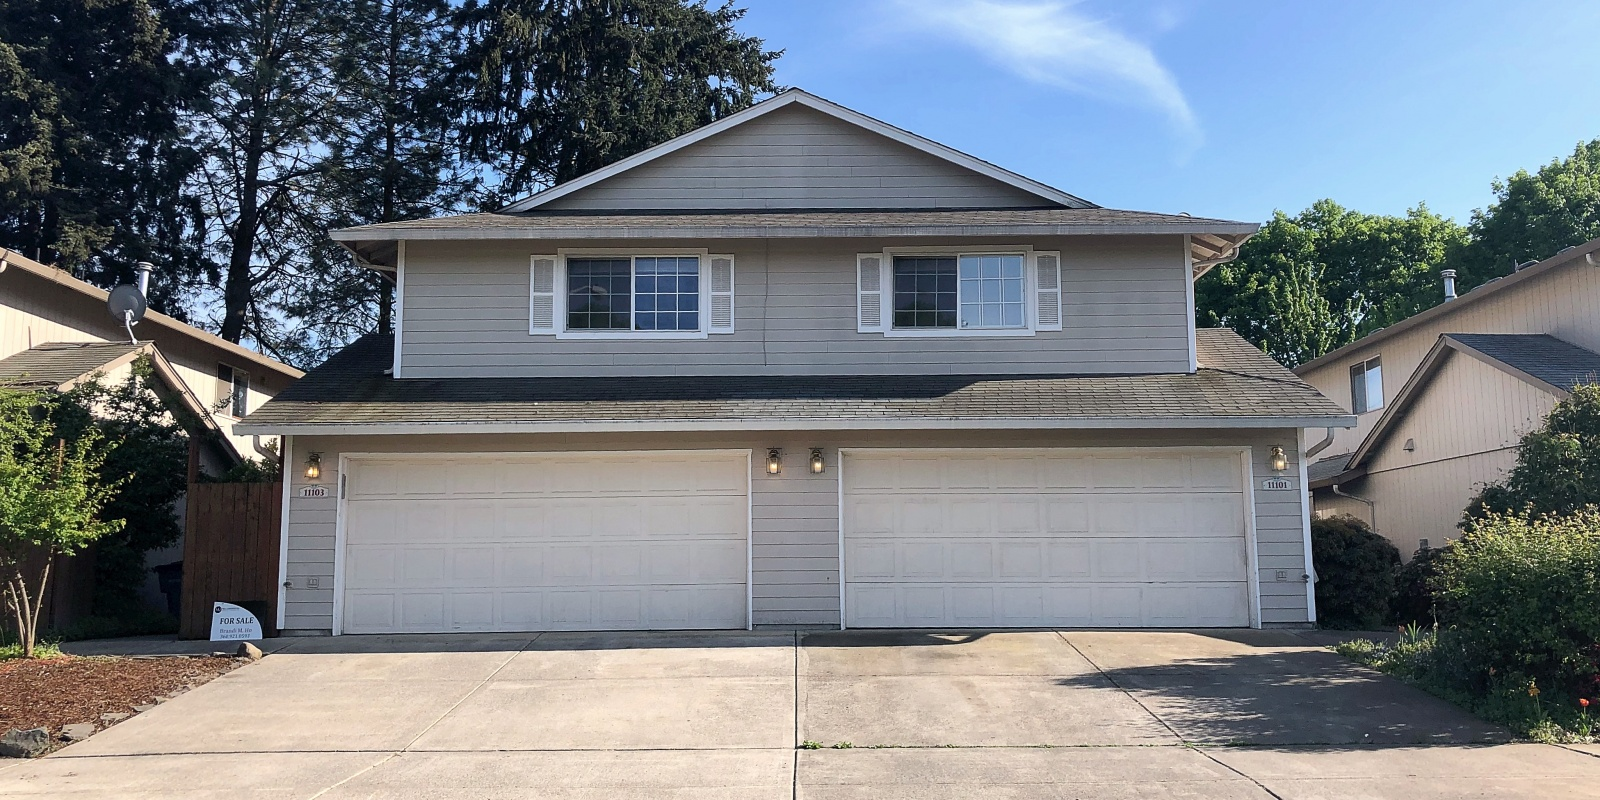 11103 NE 43rd Circle,Vancouver,WA,3 Bedrooms Bedrooms,2 BathroomsBathrooms,Single-Family Detached,11103 NE 43rd Circle,Vancouver,WA,1119